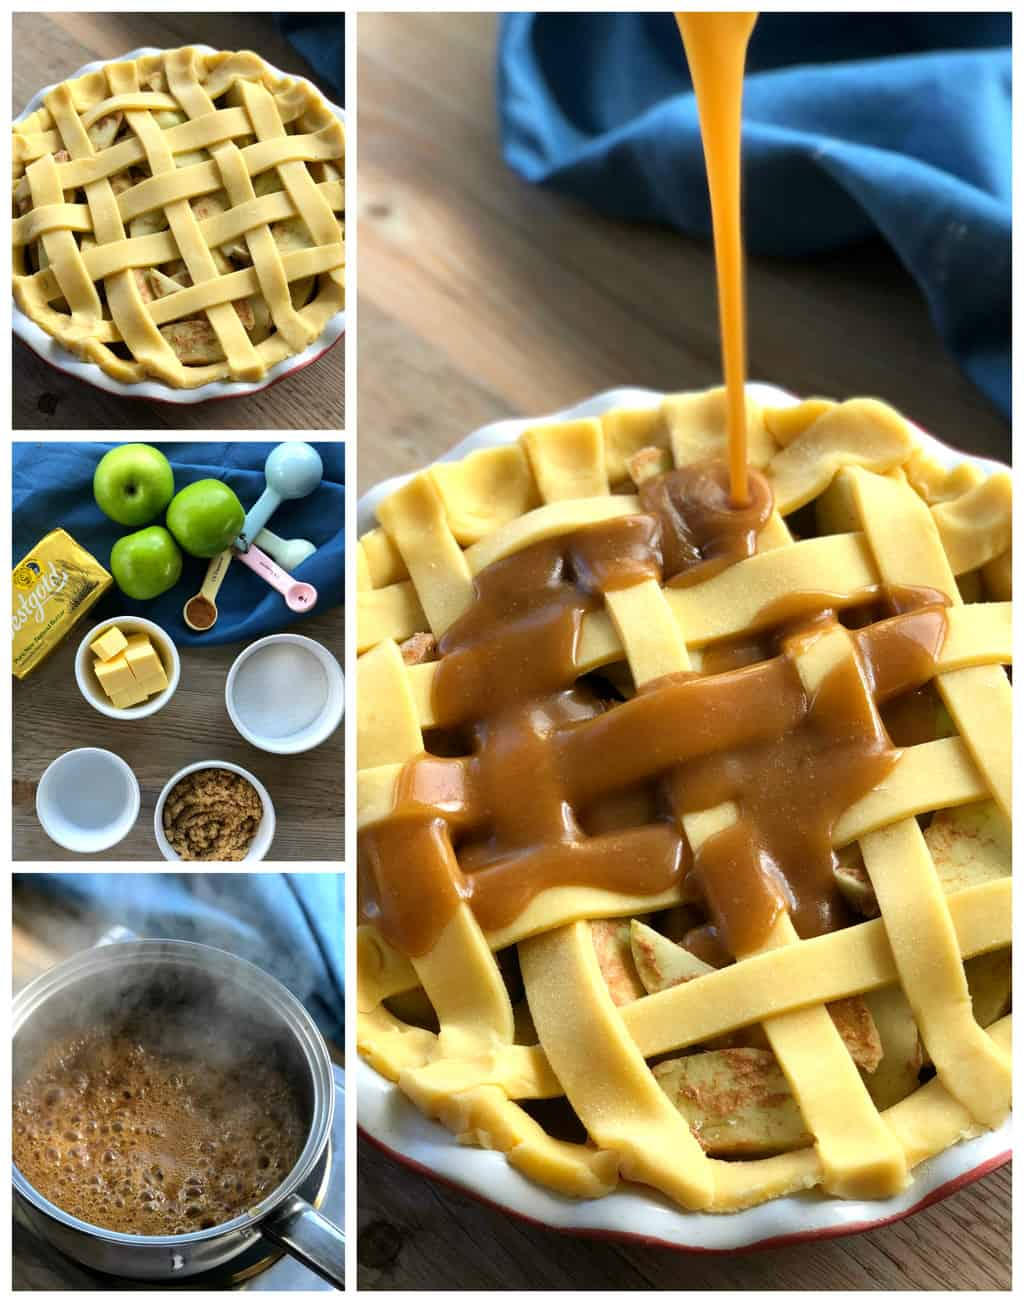 Caramel Topping for the Caramel Apple Pie Recipe